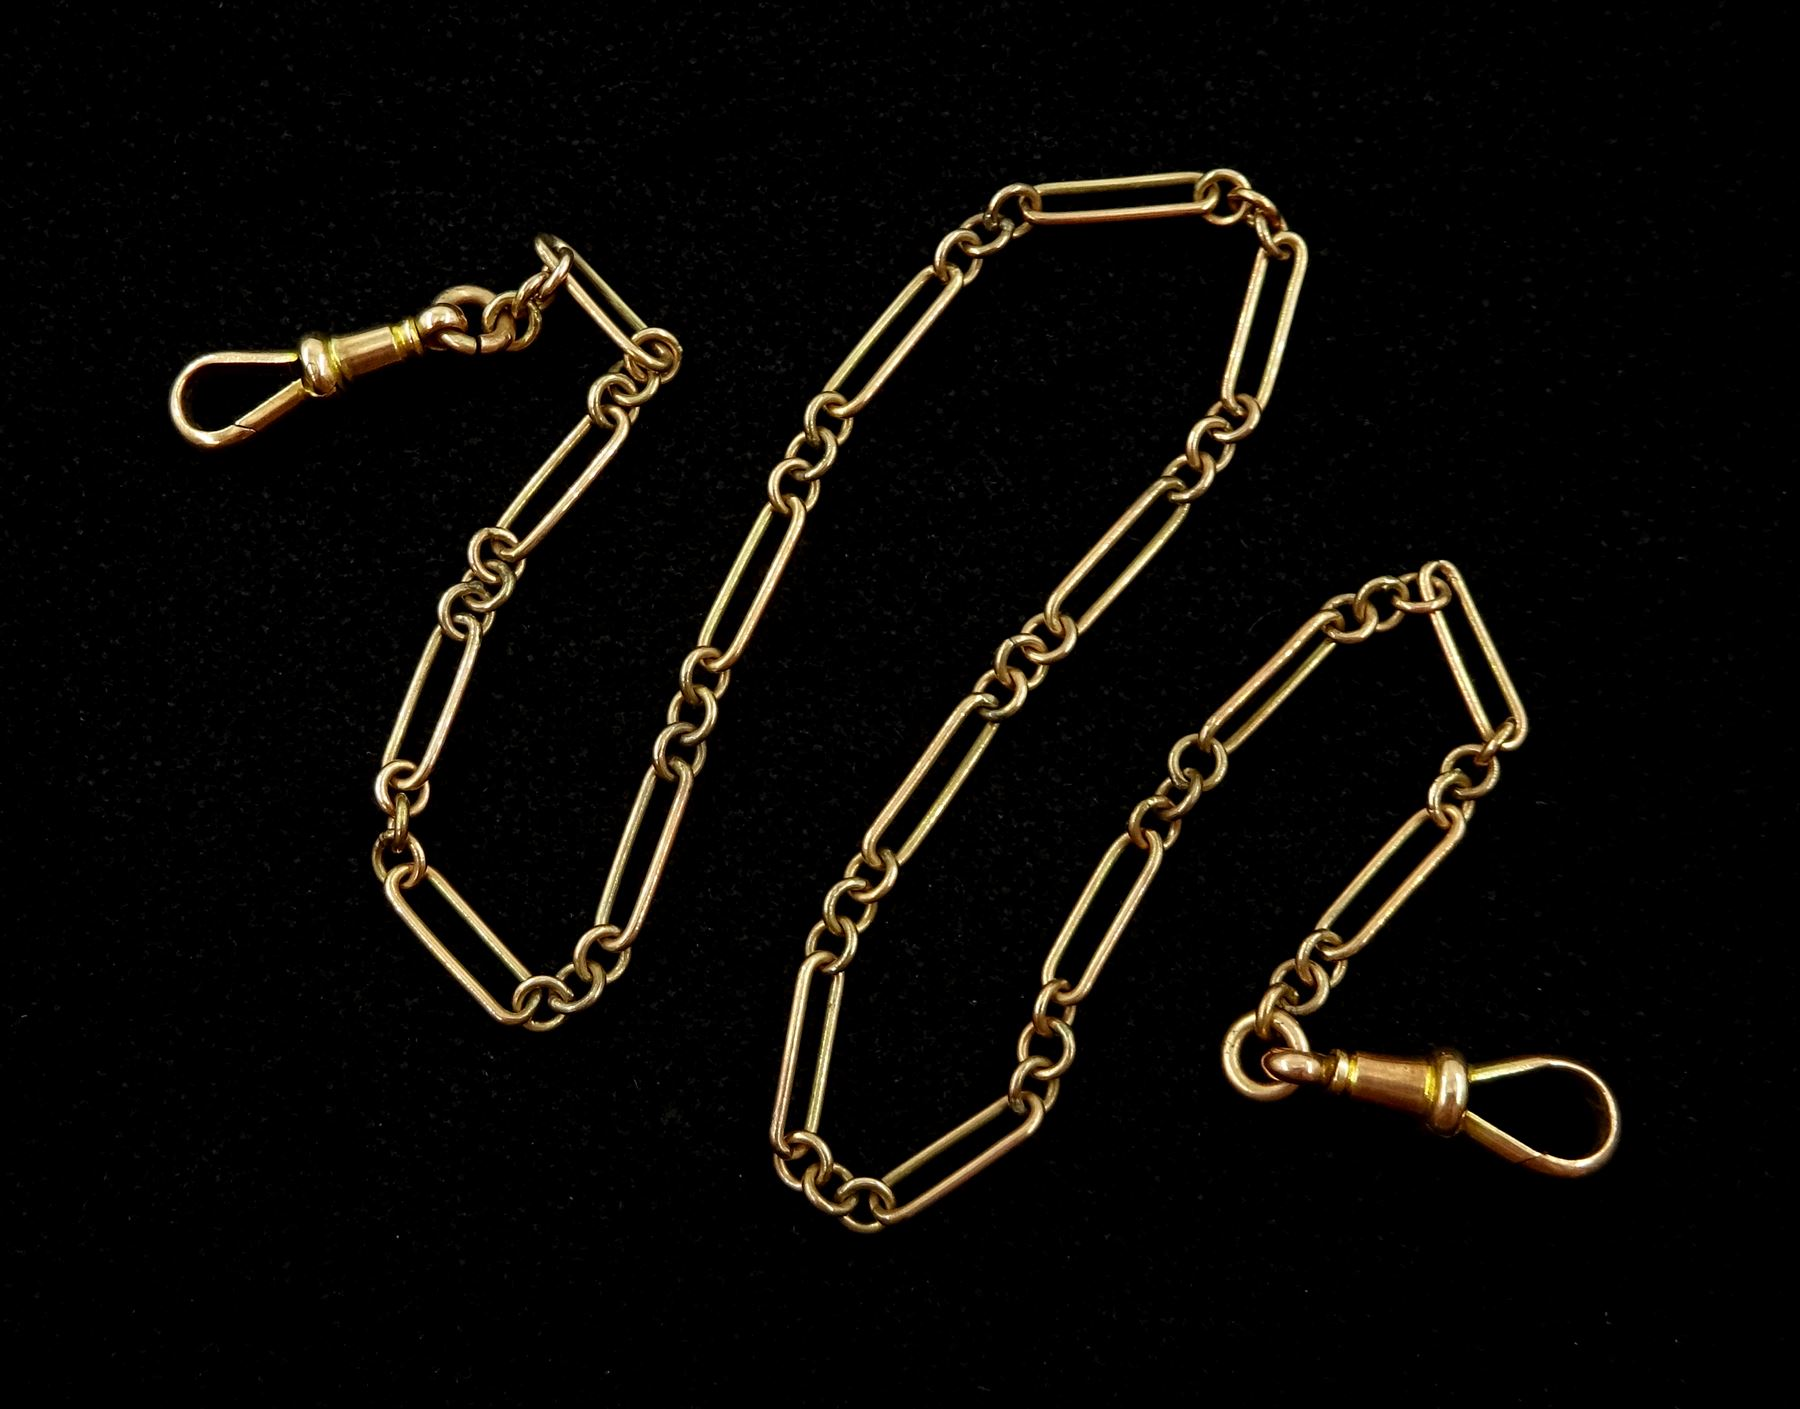 Early 20th century rose gold rectangular link watch chain